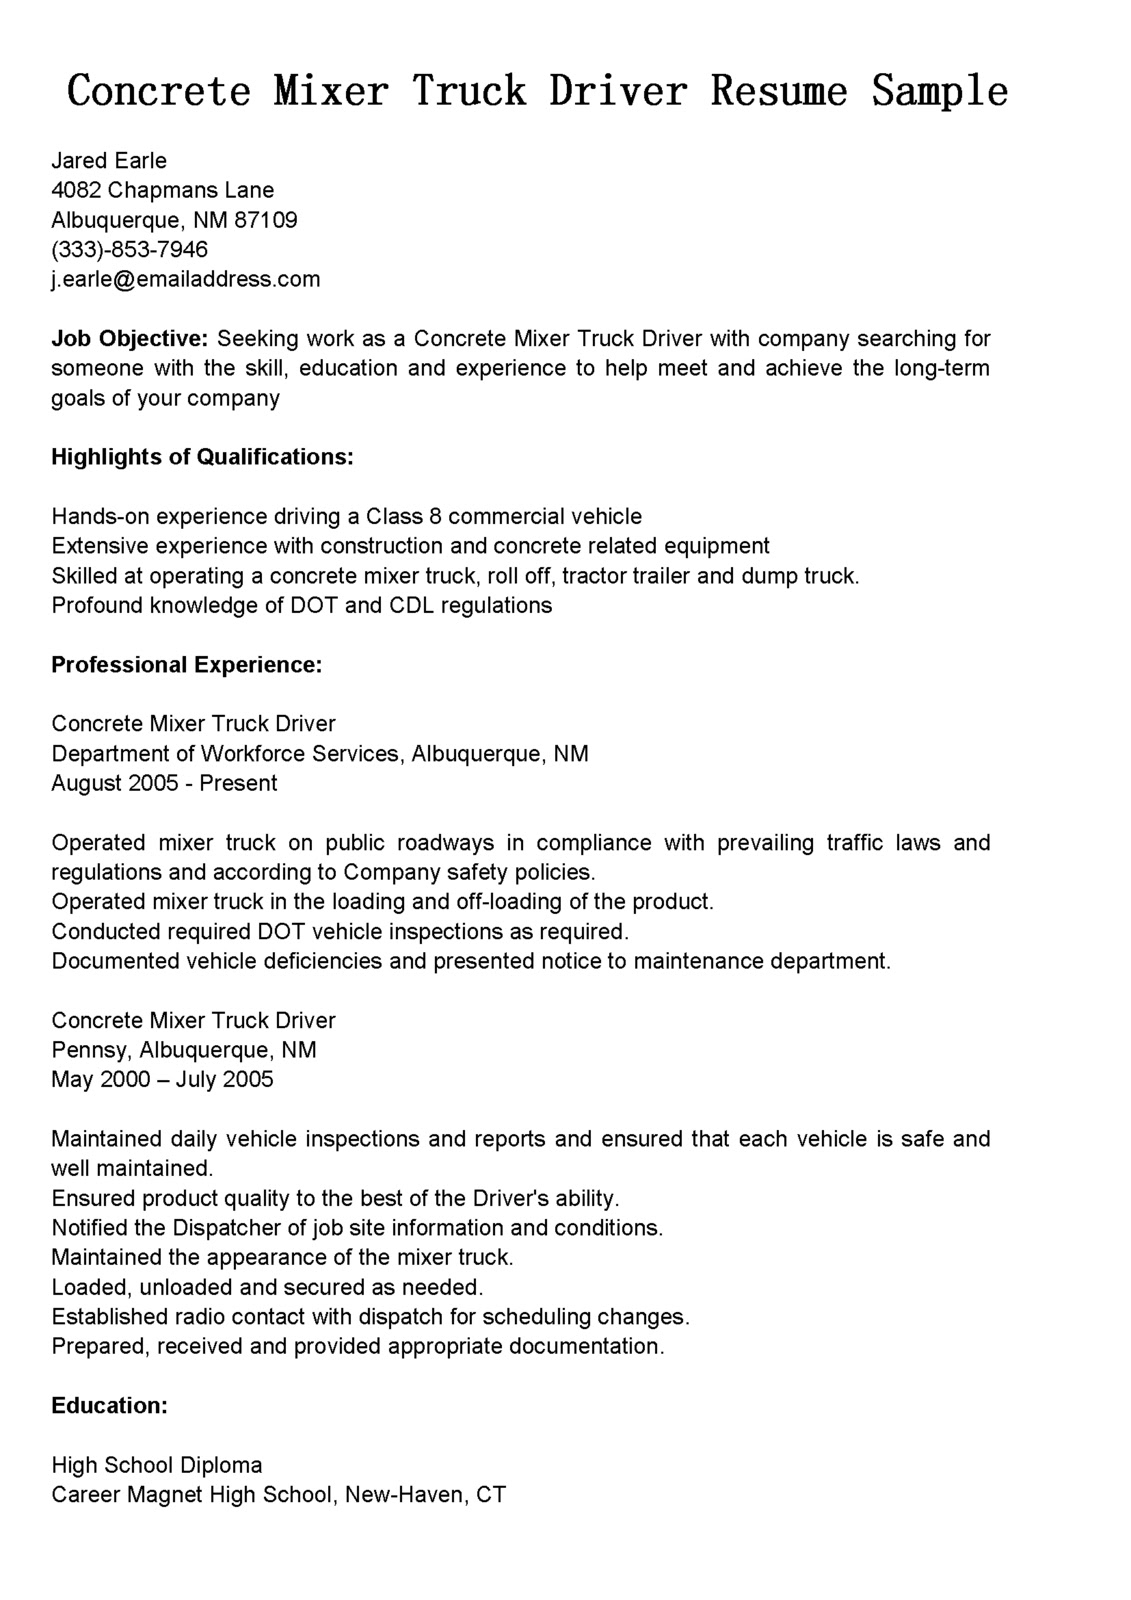 Cdl Driver Resume Sample Concrete Mixer Truck Driver Resume Myideasbedroom